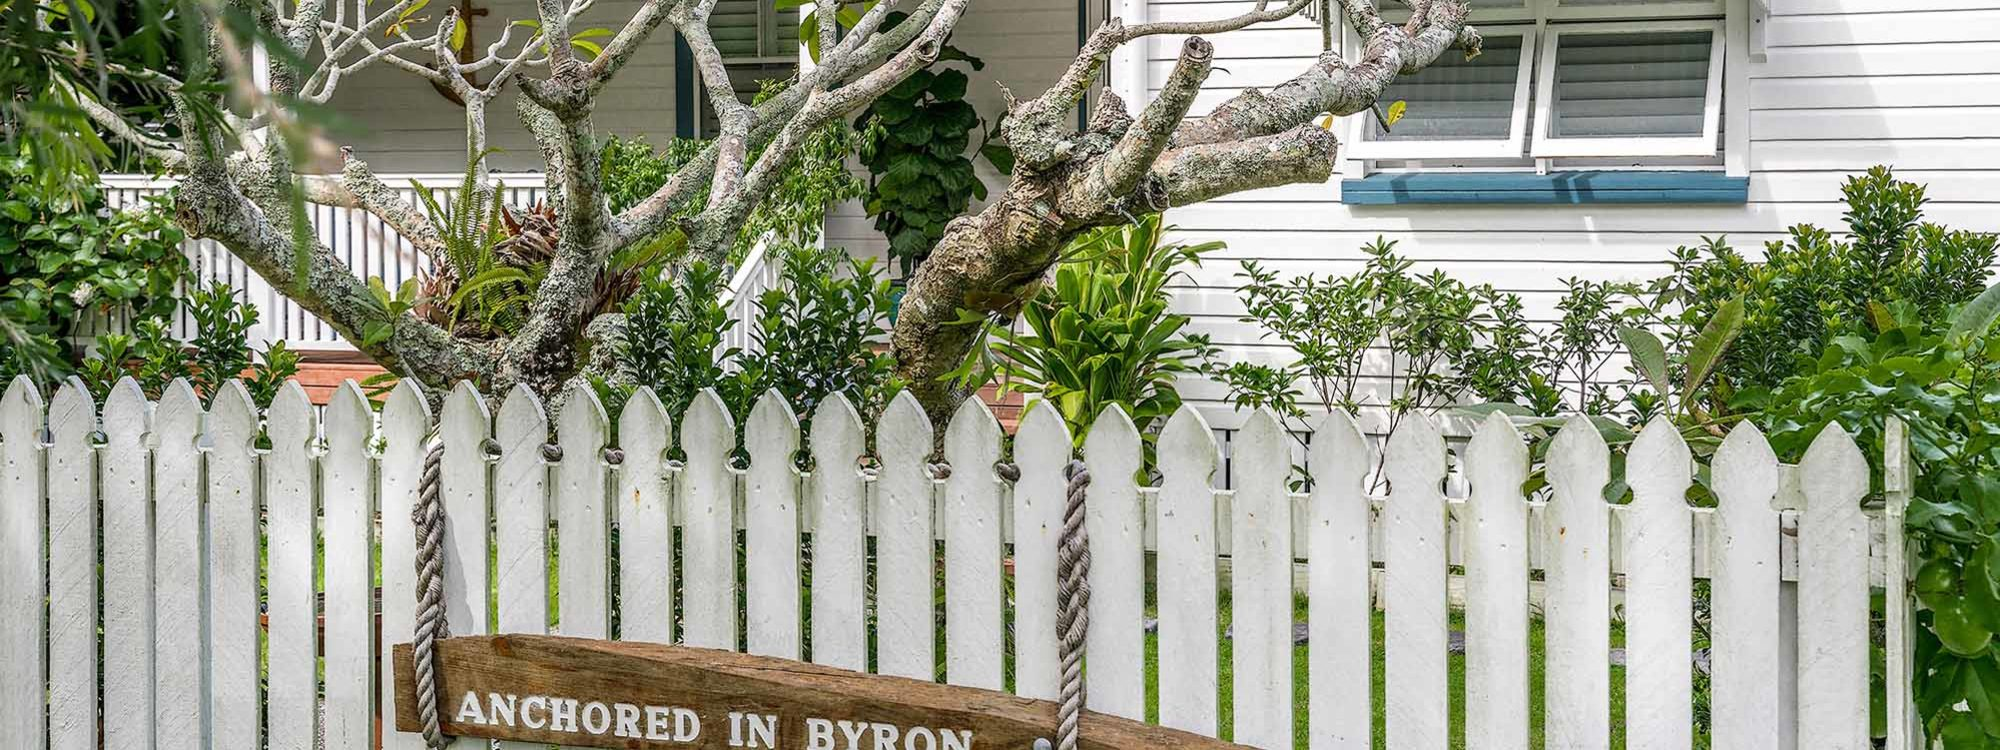 Anchored in Byron - Byron Bay - Exterior